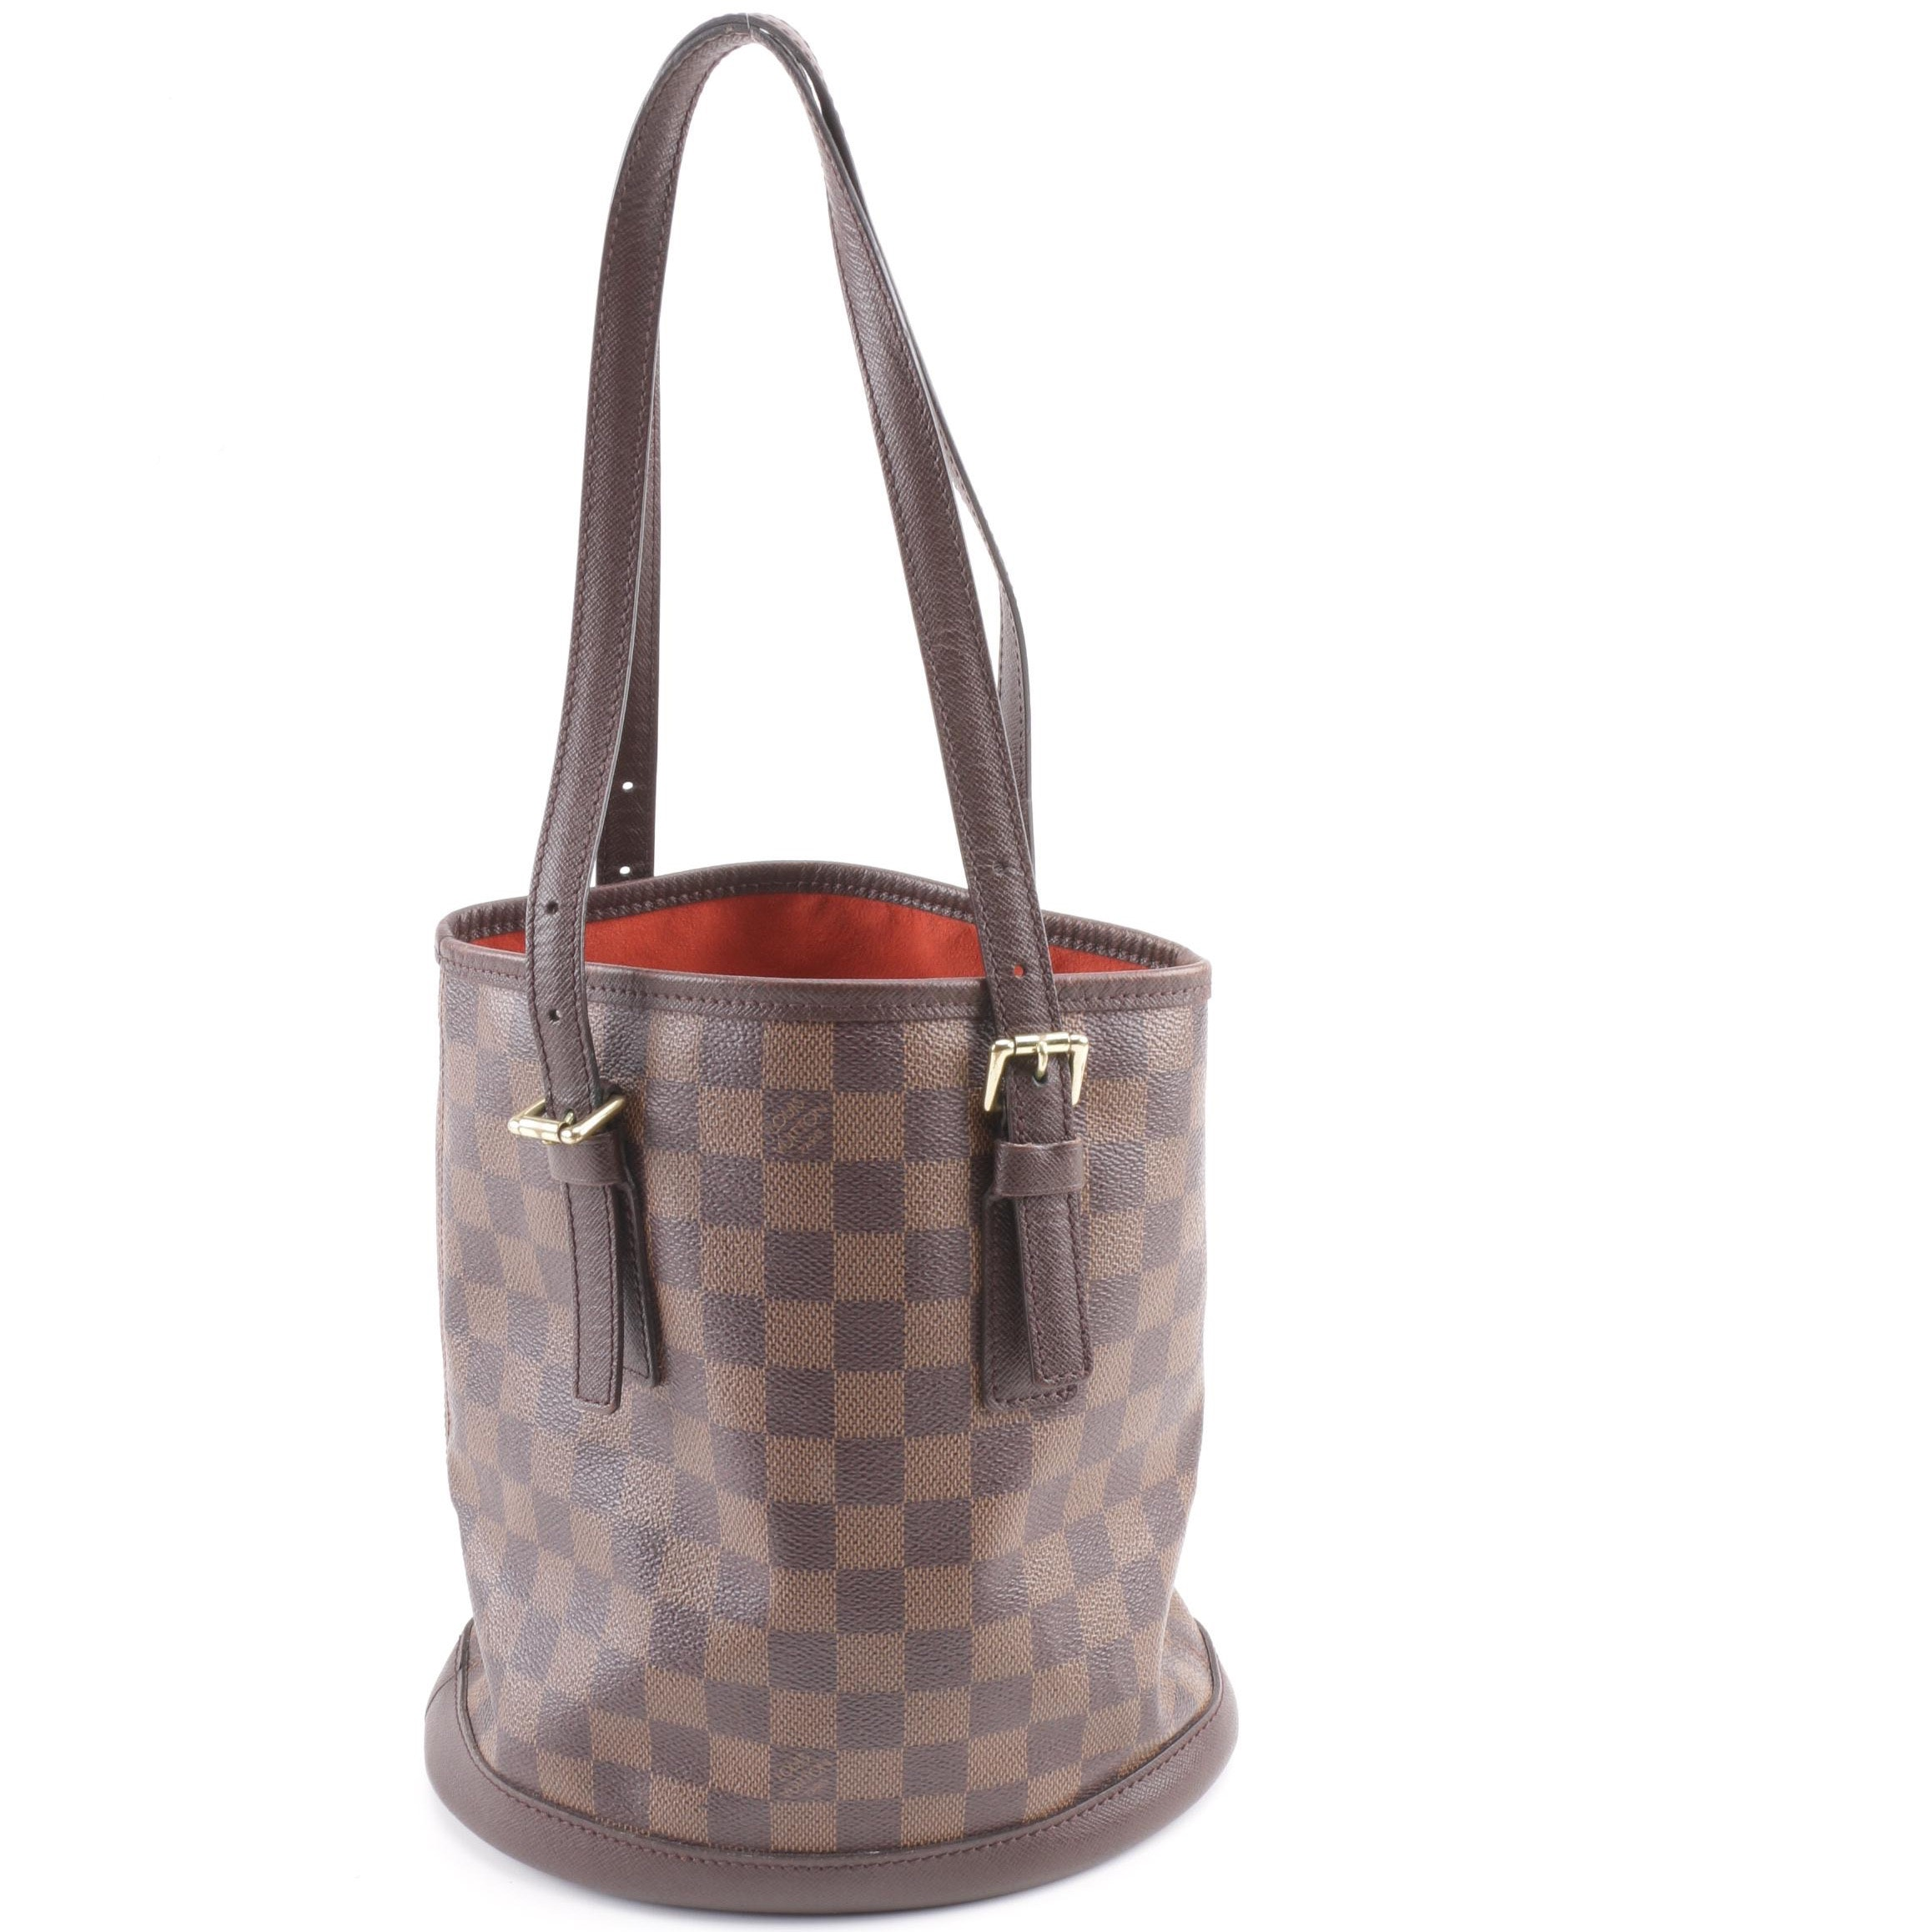 2000 Louis Vuitton Paris Damier Ebene Canvas Petite Bucket Bag